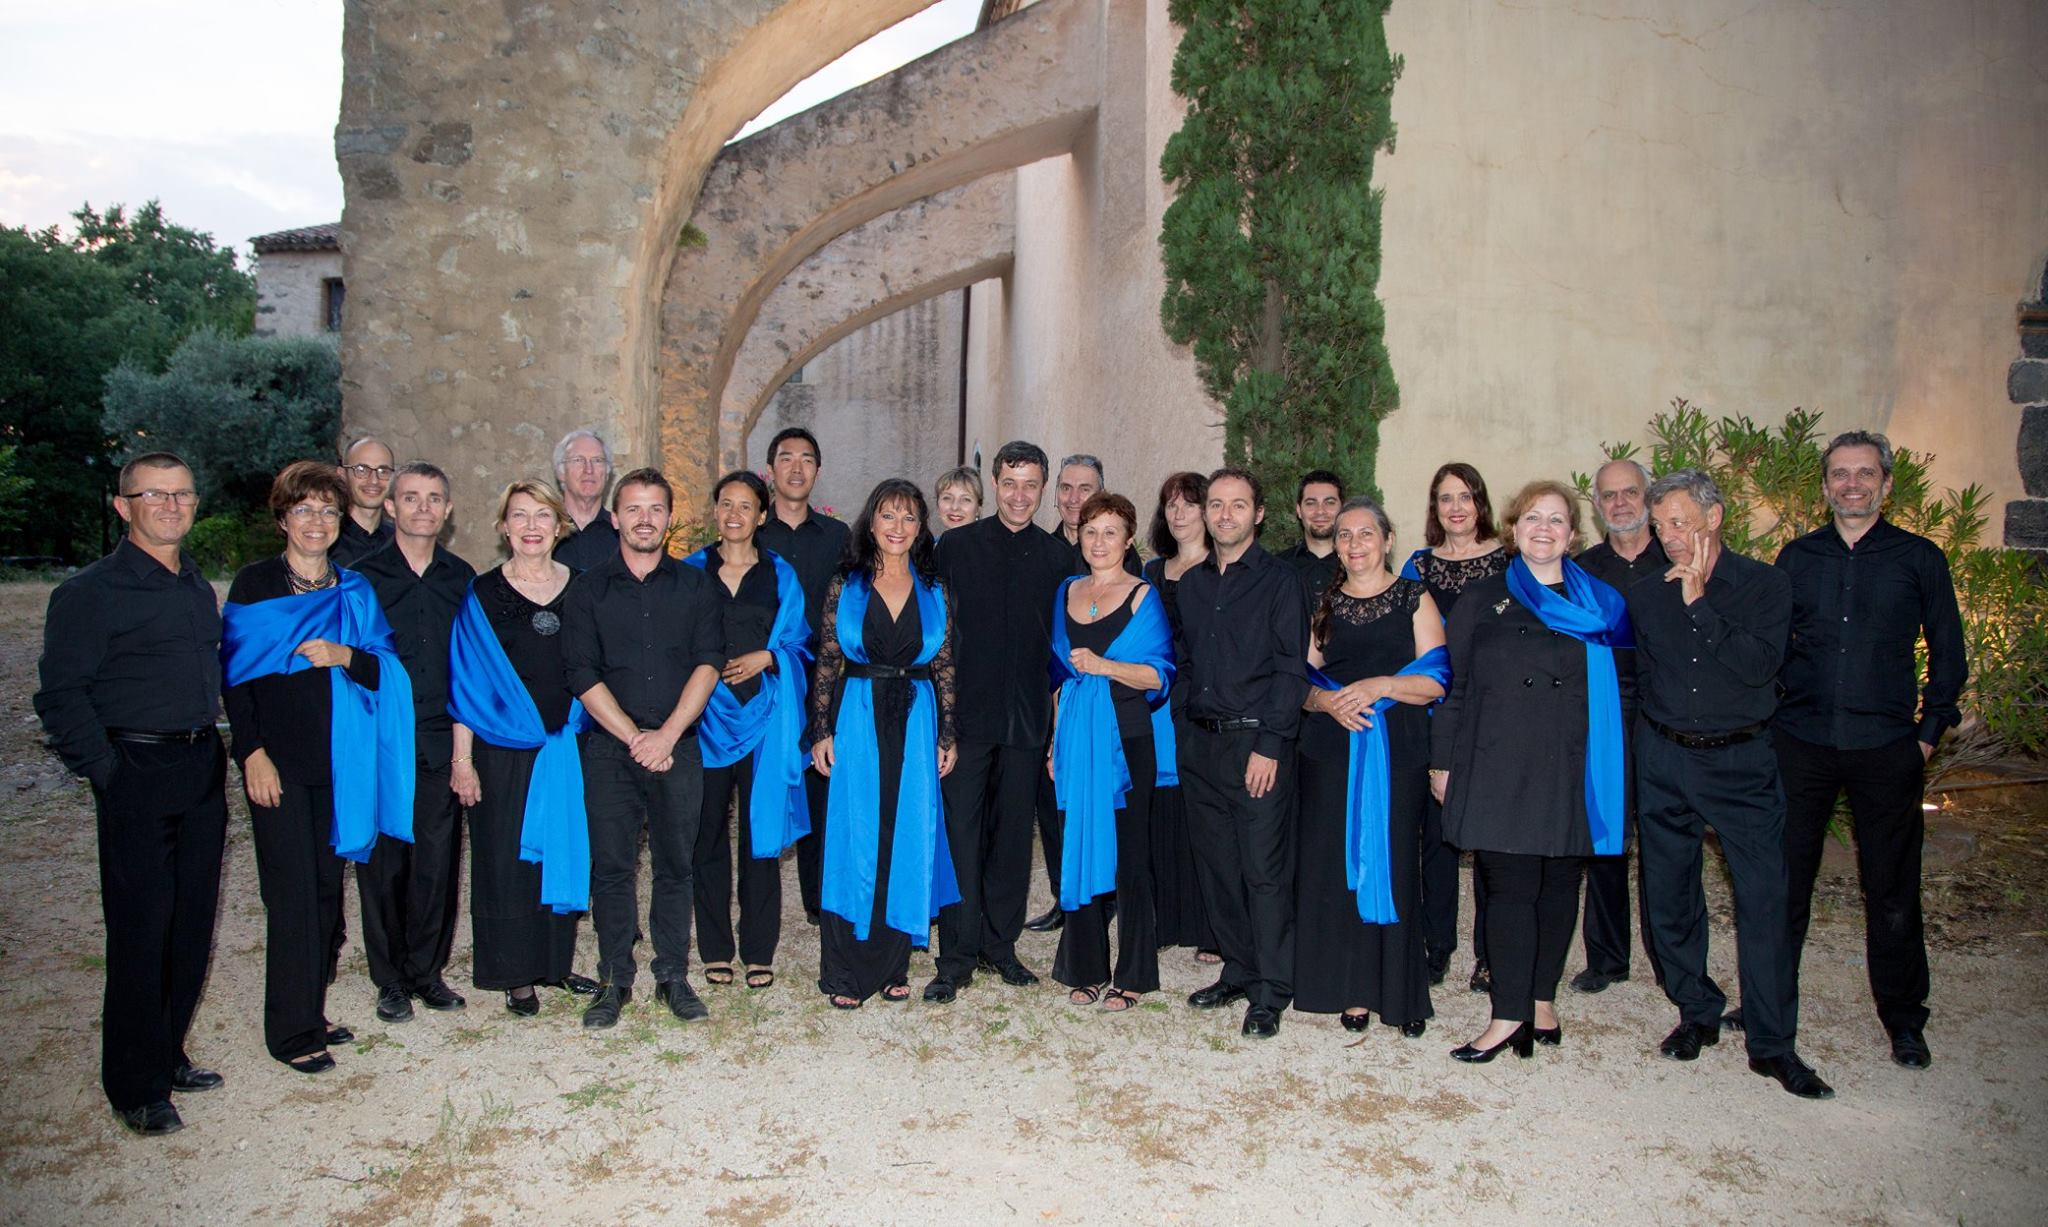 ensemble vocal, concerts et spectacles